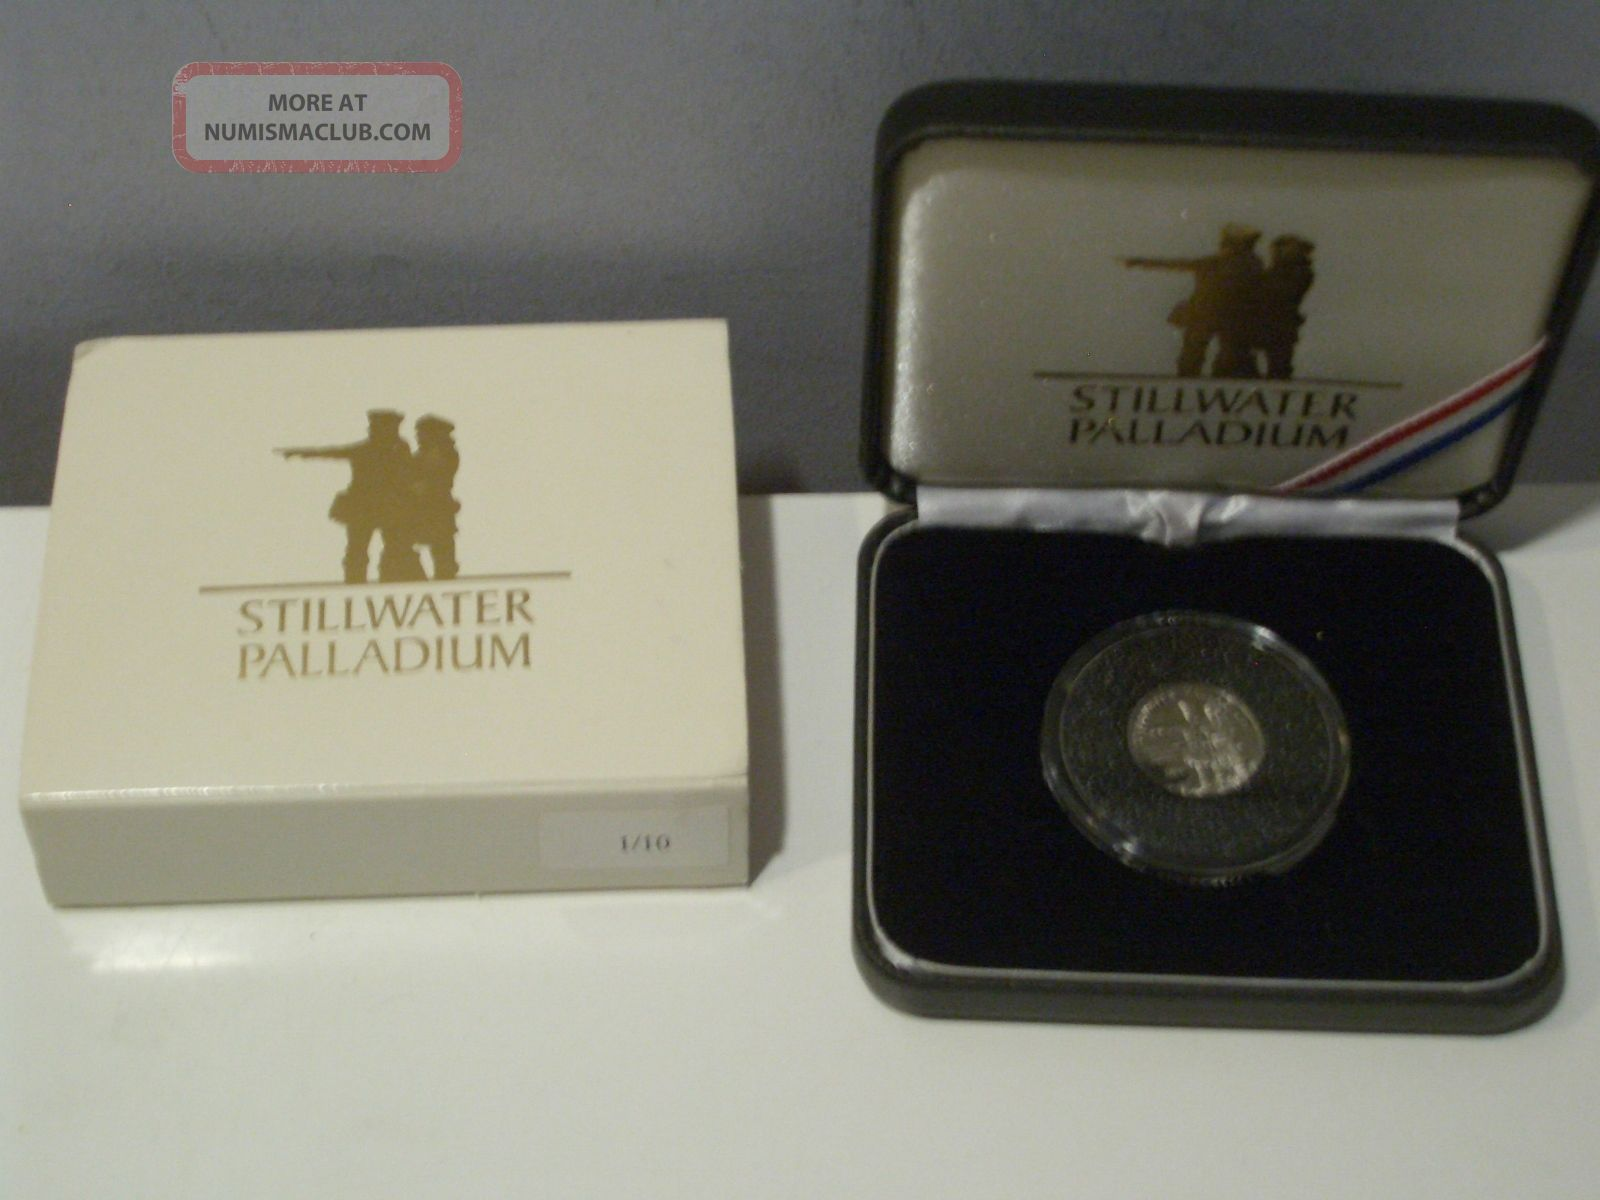 2004 Stillwater Palladium 1/10 Oz.  9995 Fine Lewis & Clark Corps Of Discovery Bullion photo